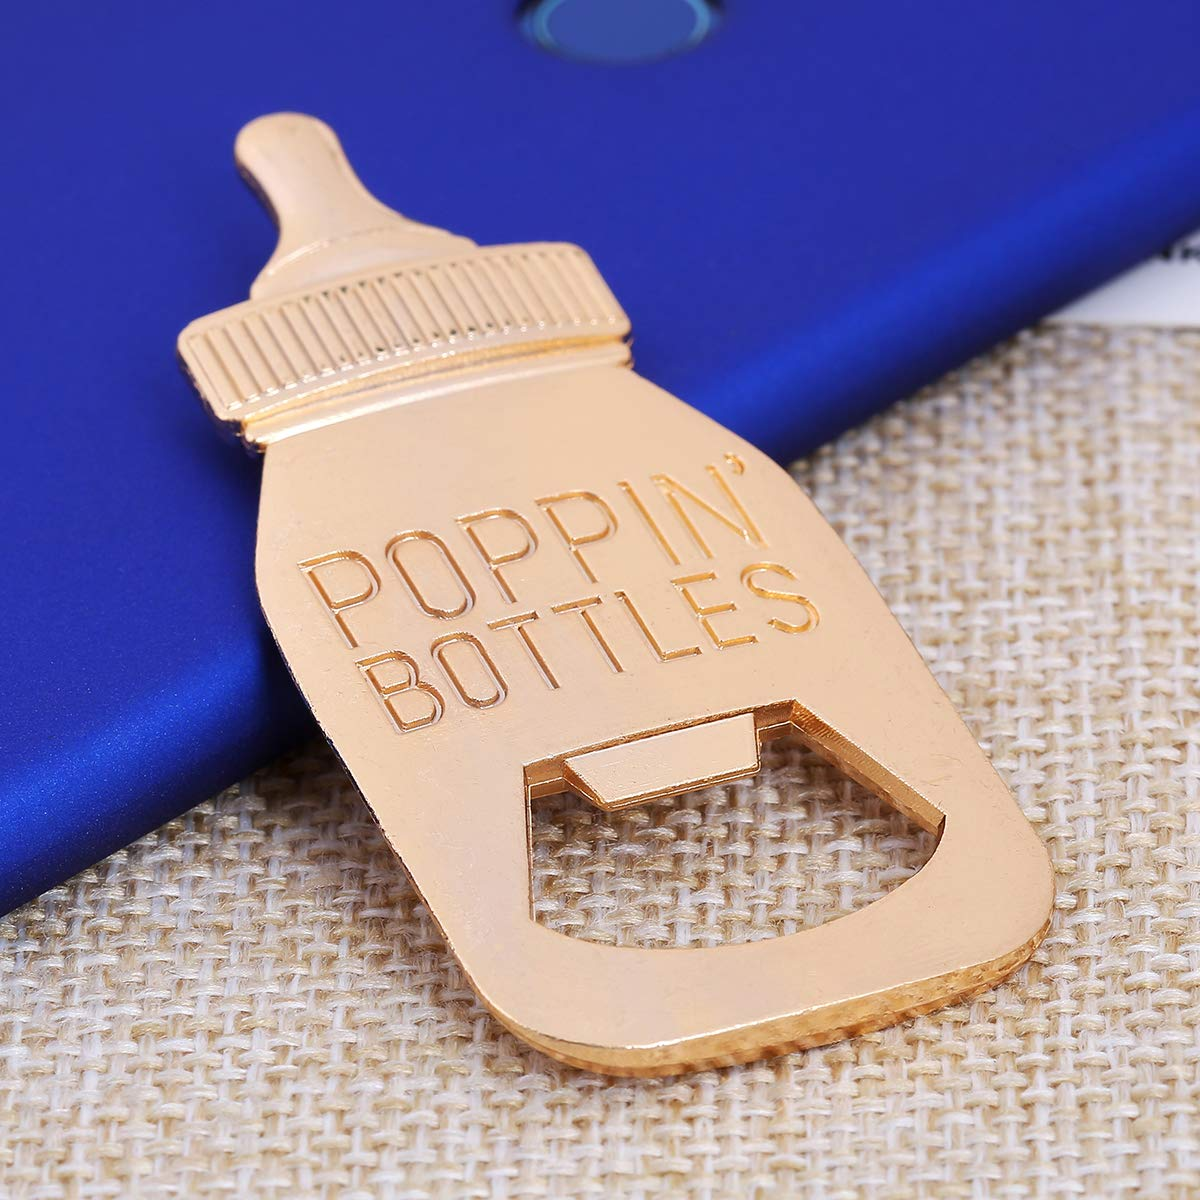 24 pcs Baby Shower Return Gifts for Guest Supplies Poppin Baby Bottle Shaped Bottle Opener Wedding Favor with Exquisite Packaging Party Souvenirs Gift Decorations by WeddParty (Blue 24pcs) by WeddPtyFr (Image #8)